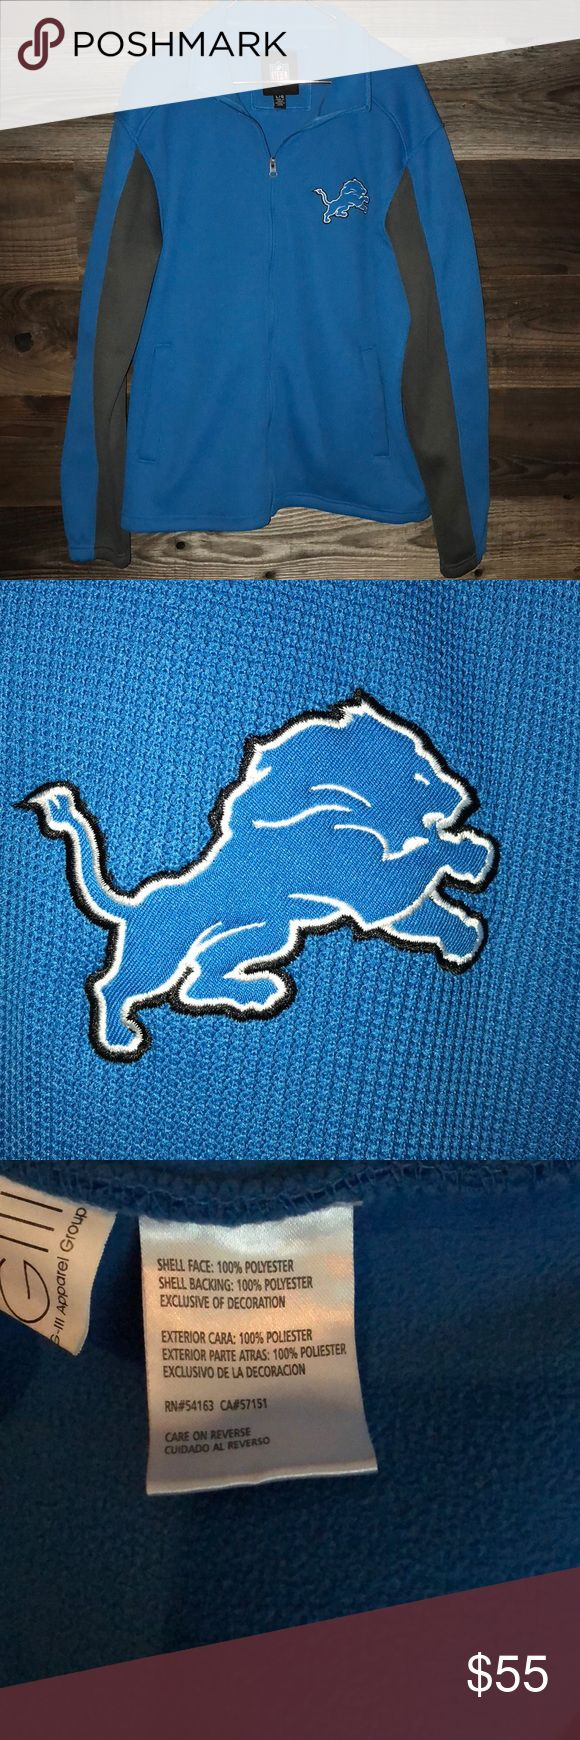 NWOT Lions zip up sweatshirt Official NFL gear. Detroit Lions women's zip up. Could be consider a sweatshirt or a jacket. Fleece lined inside. New without tags. Tops Sweatshirts & Hoodies